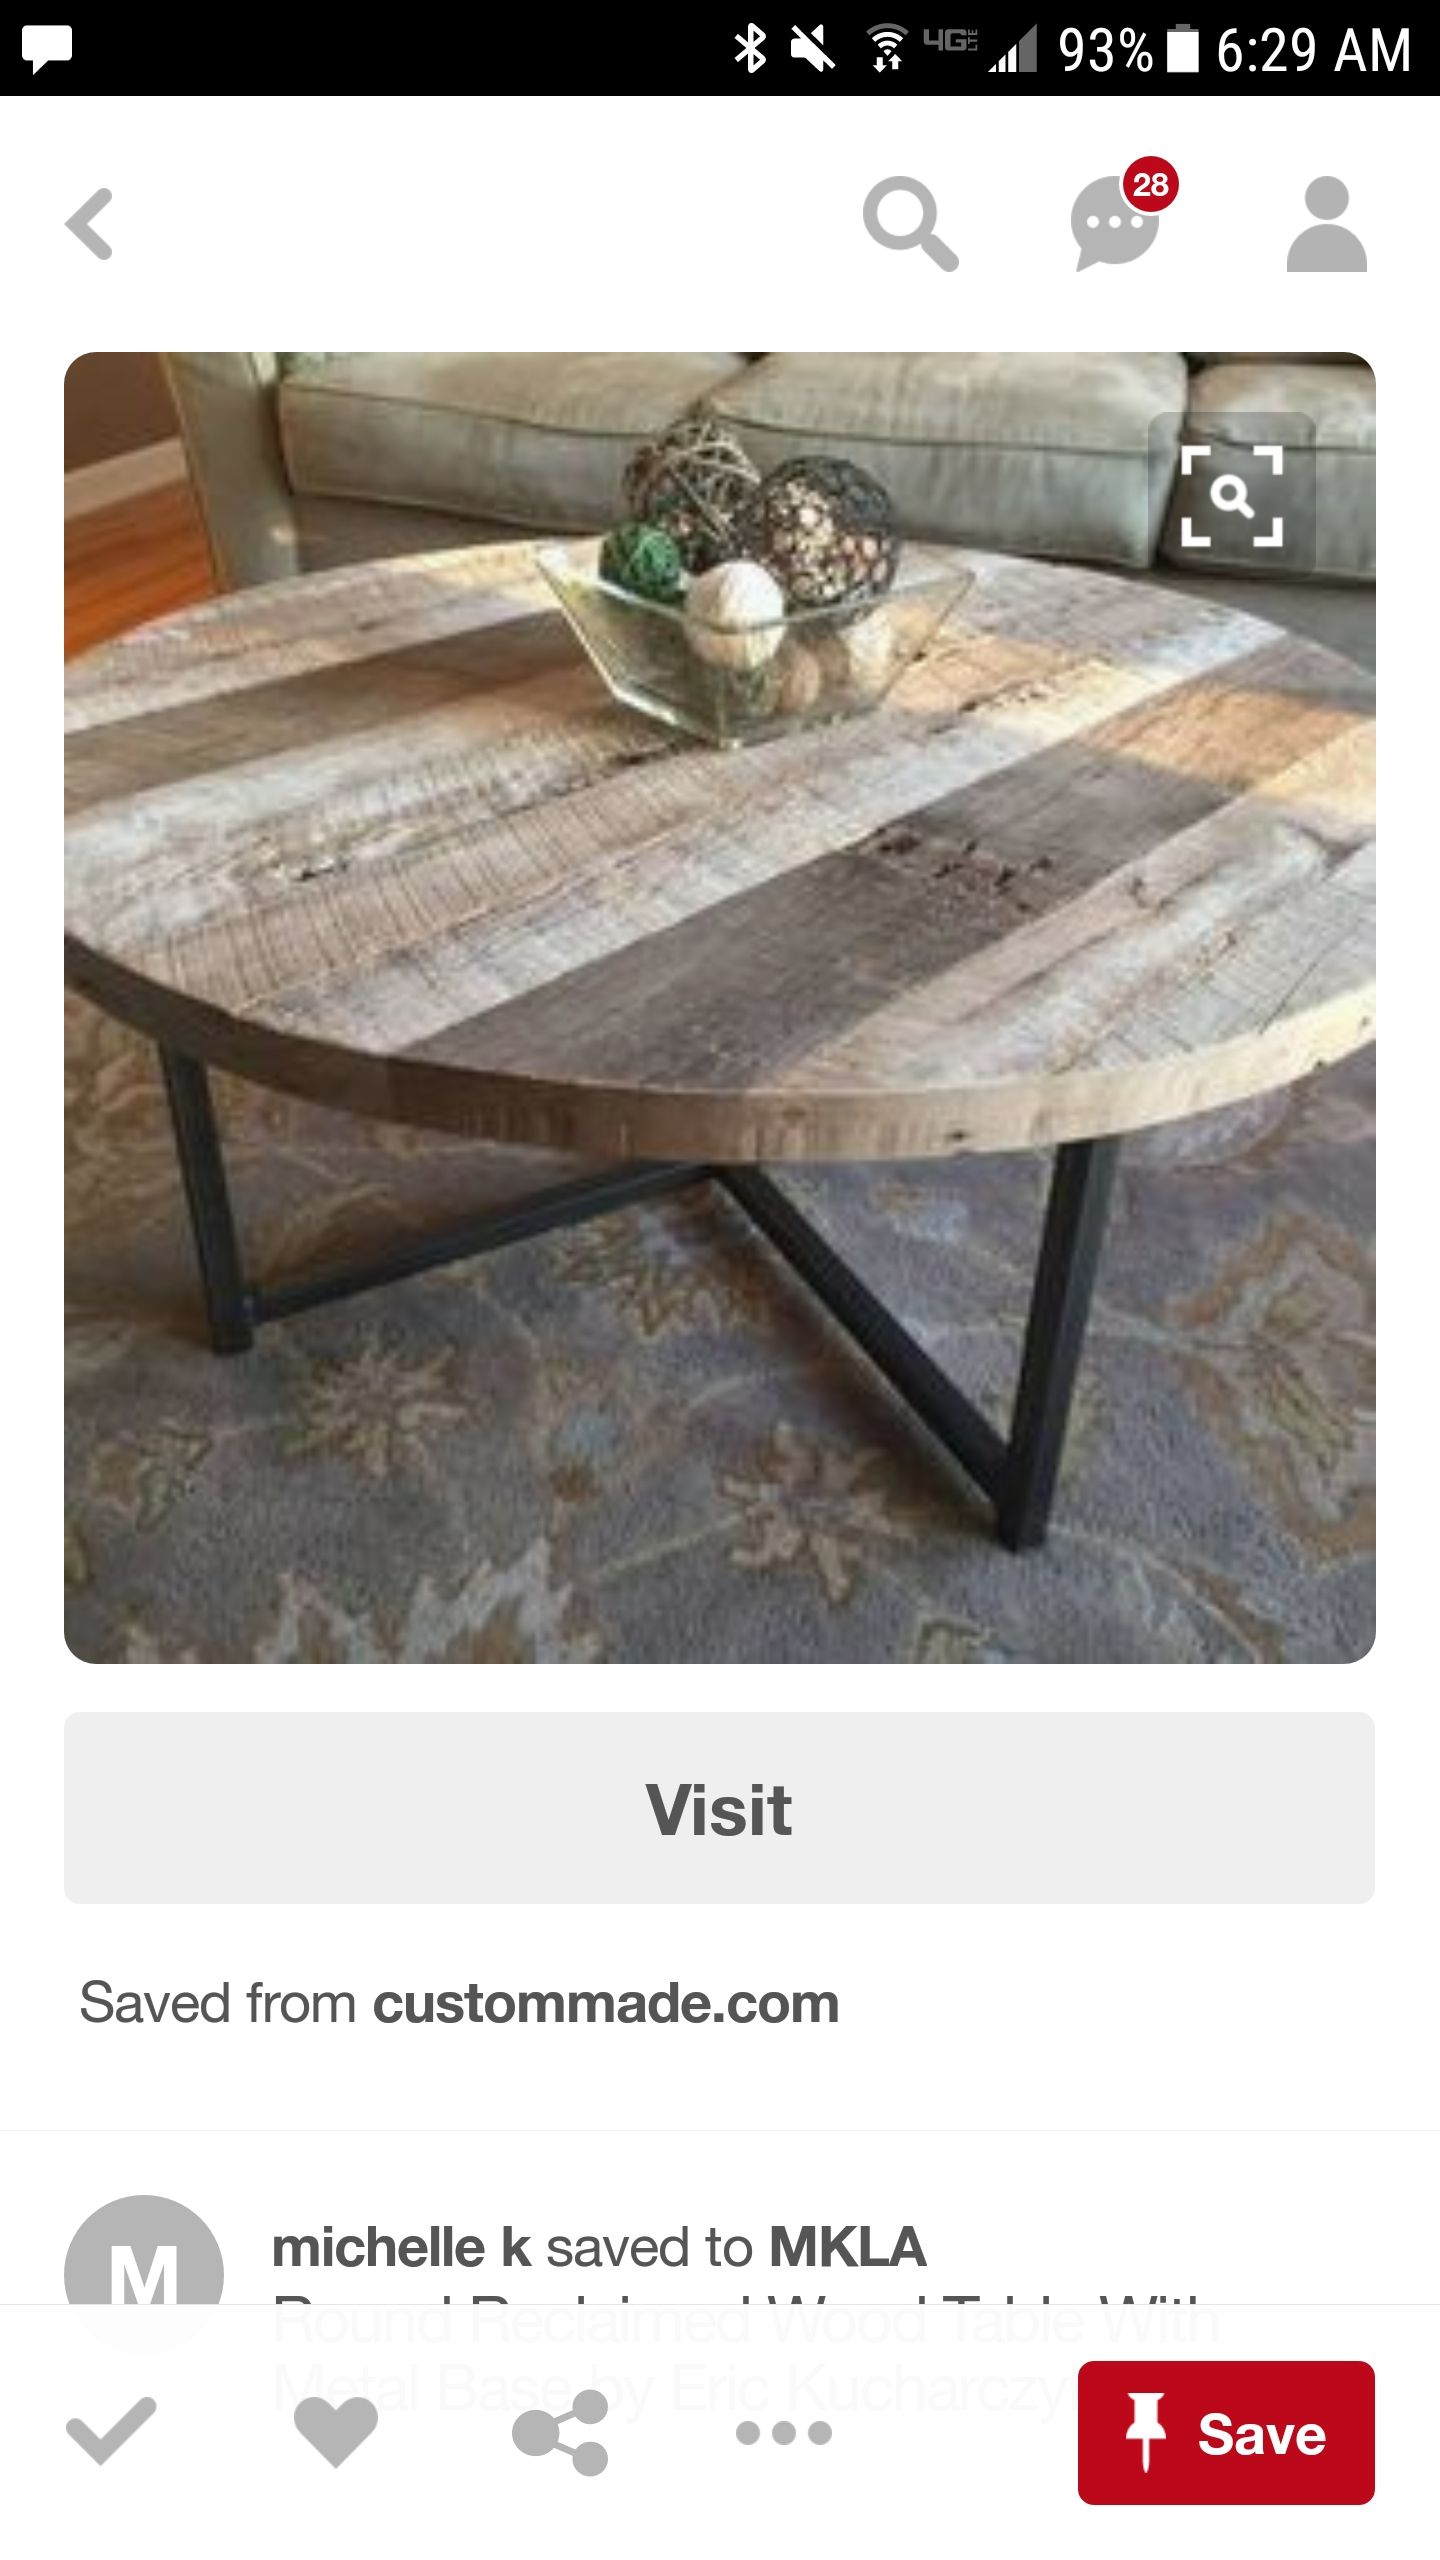 Pin By Nadine Borghol On Misc Coffee Table Farmhouse Coffee Table Wood Round Wood Table [ 2560 x 1440 Pixel ]